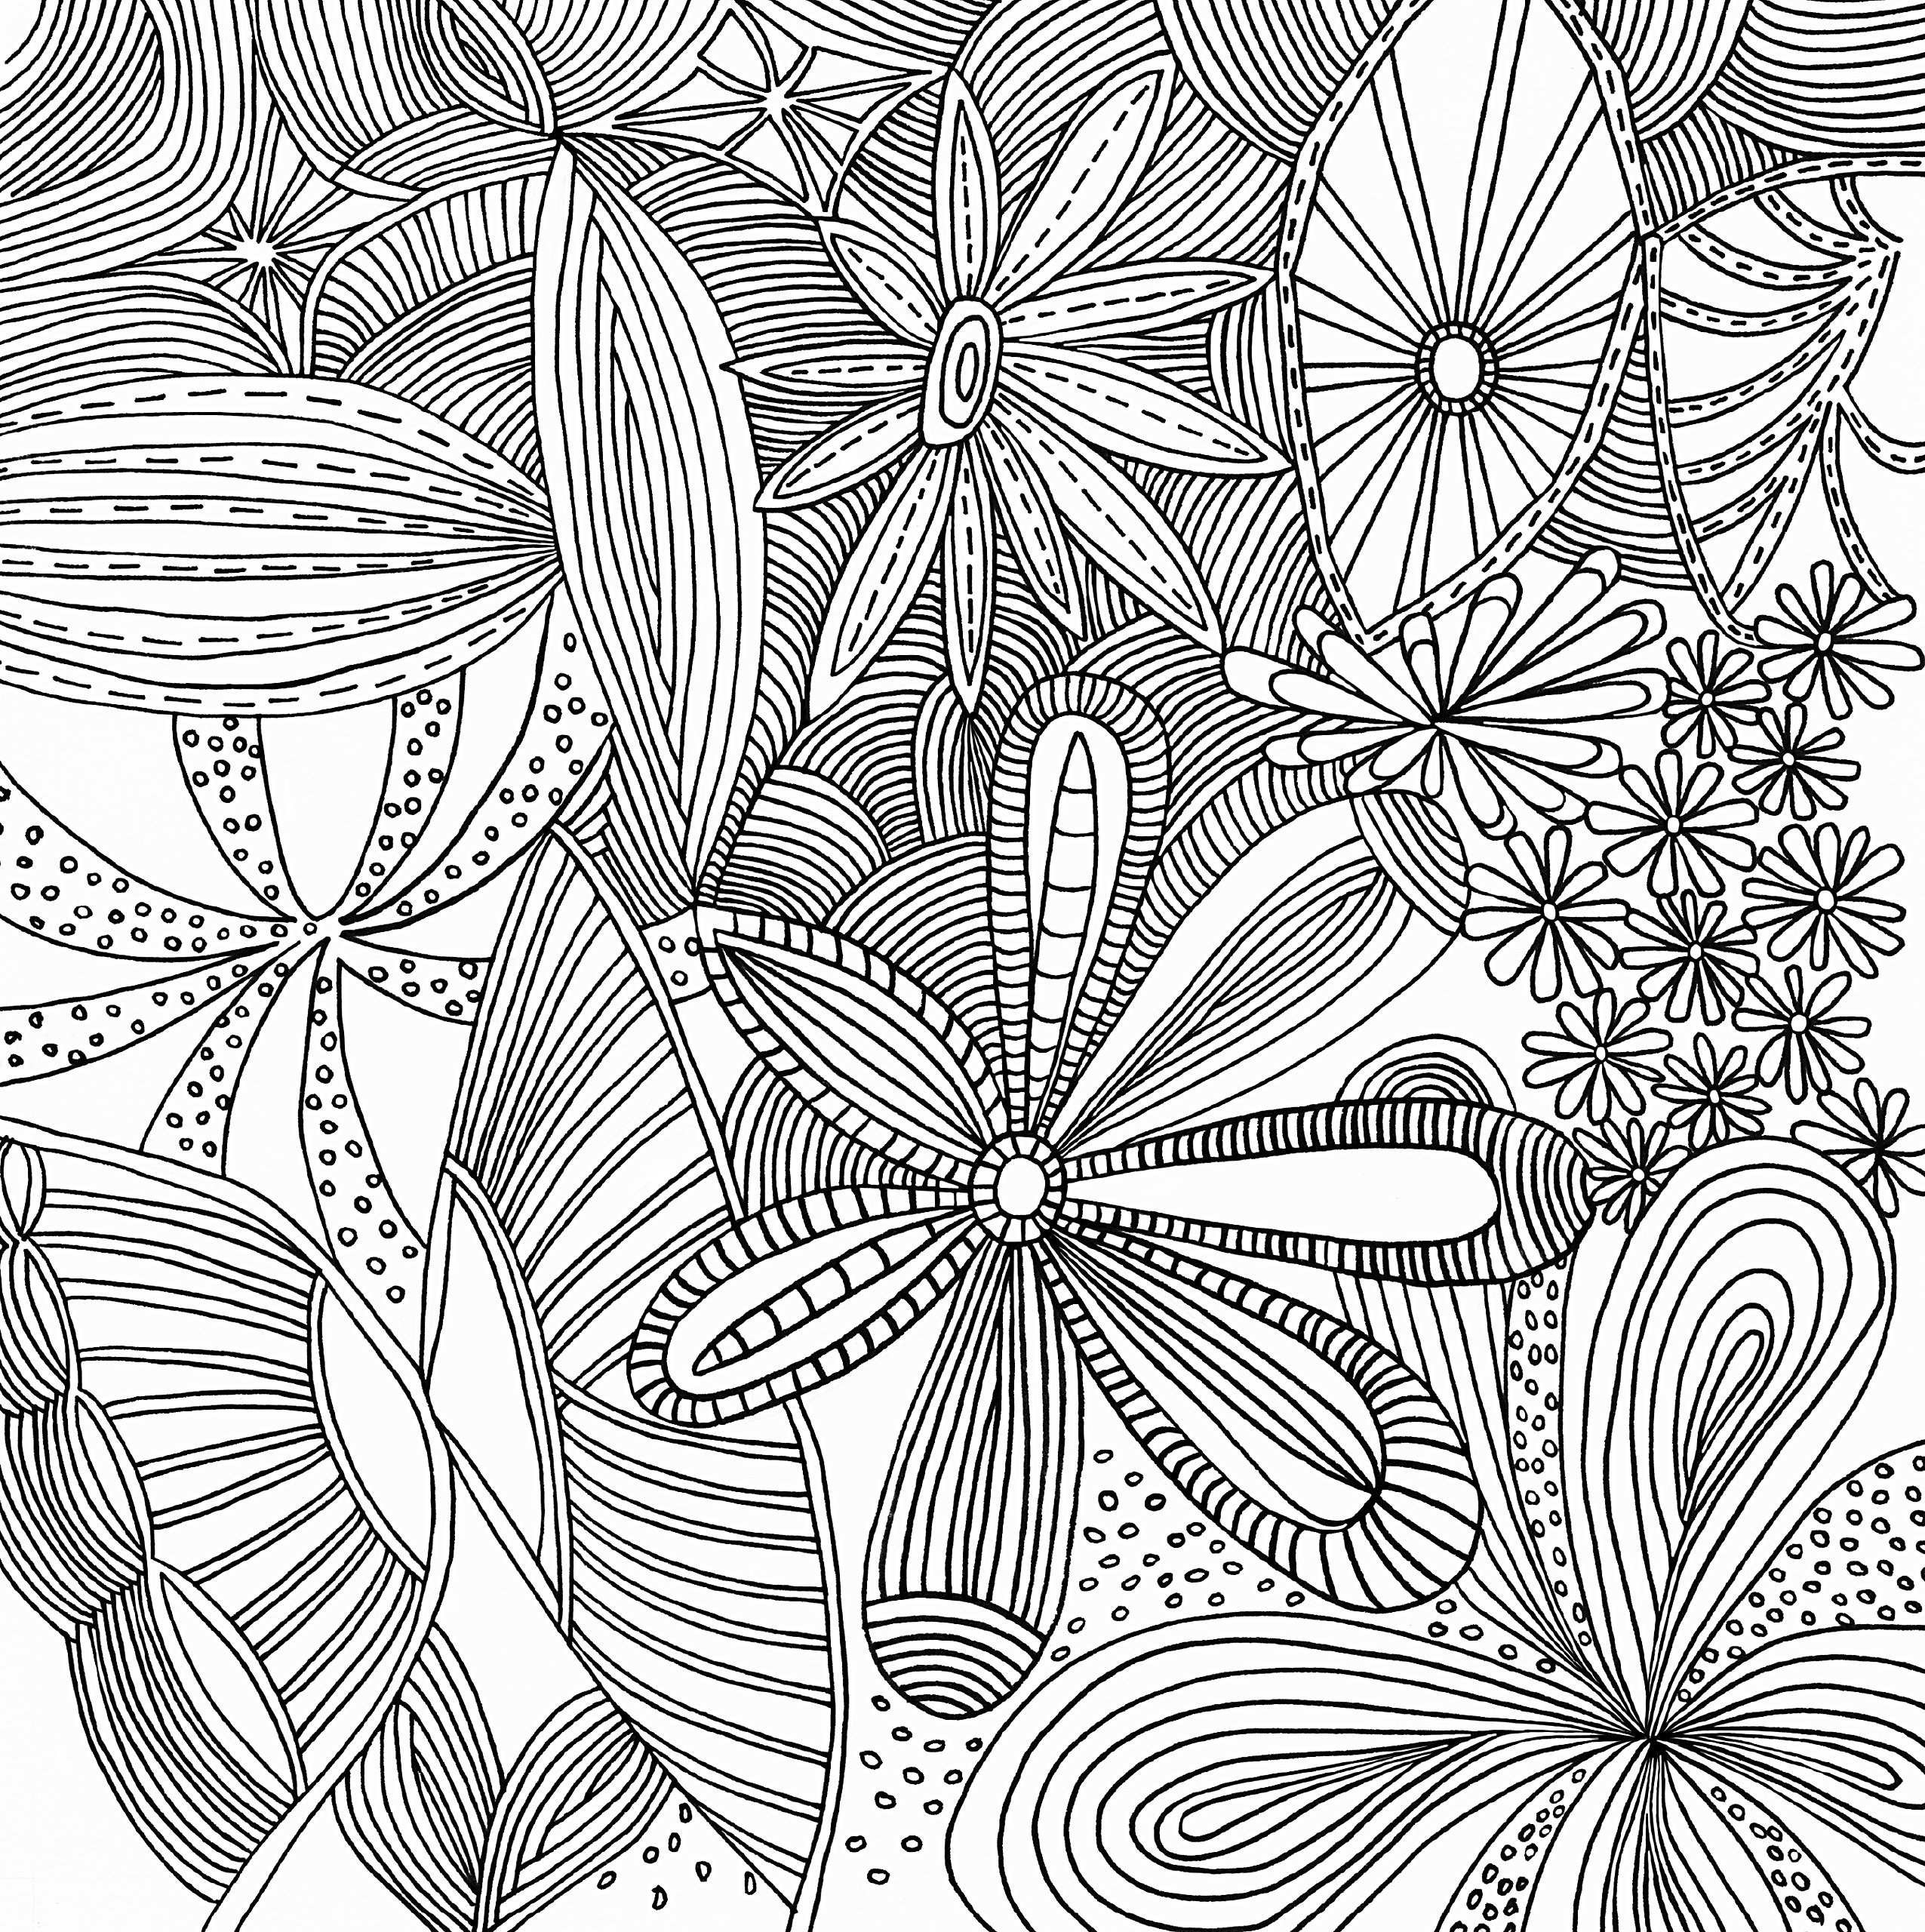 Cute Halloween Coloring Pages Advanced Halloween Coloring Pages New Peacock Coloring Pages Unique